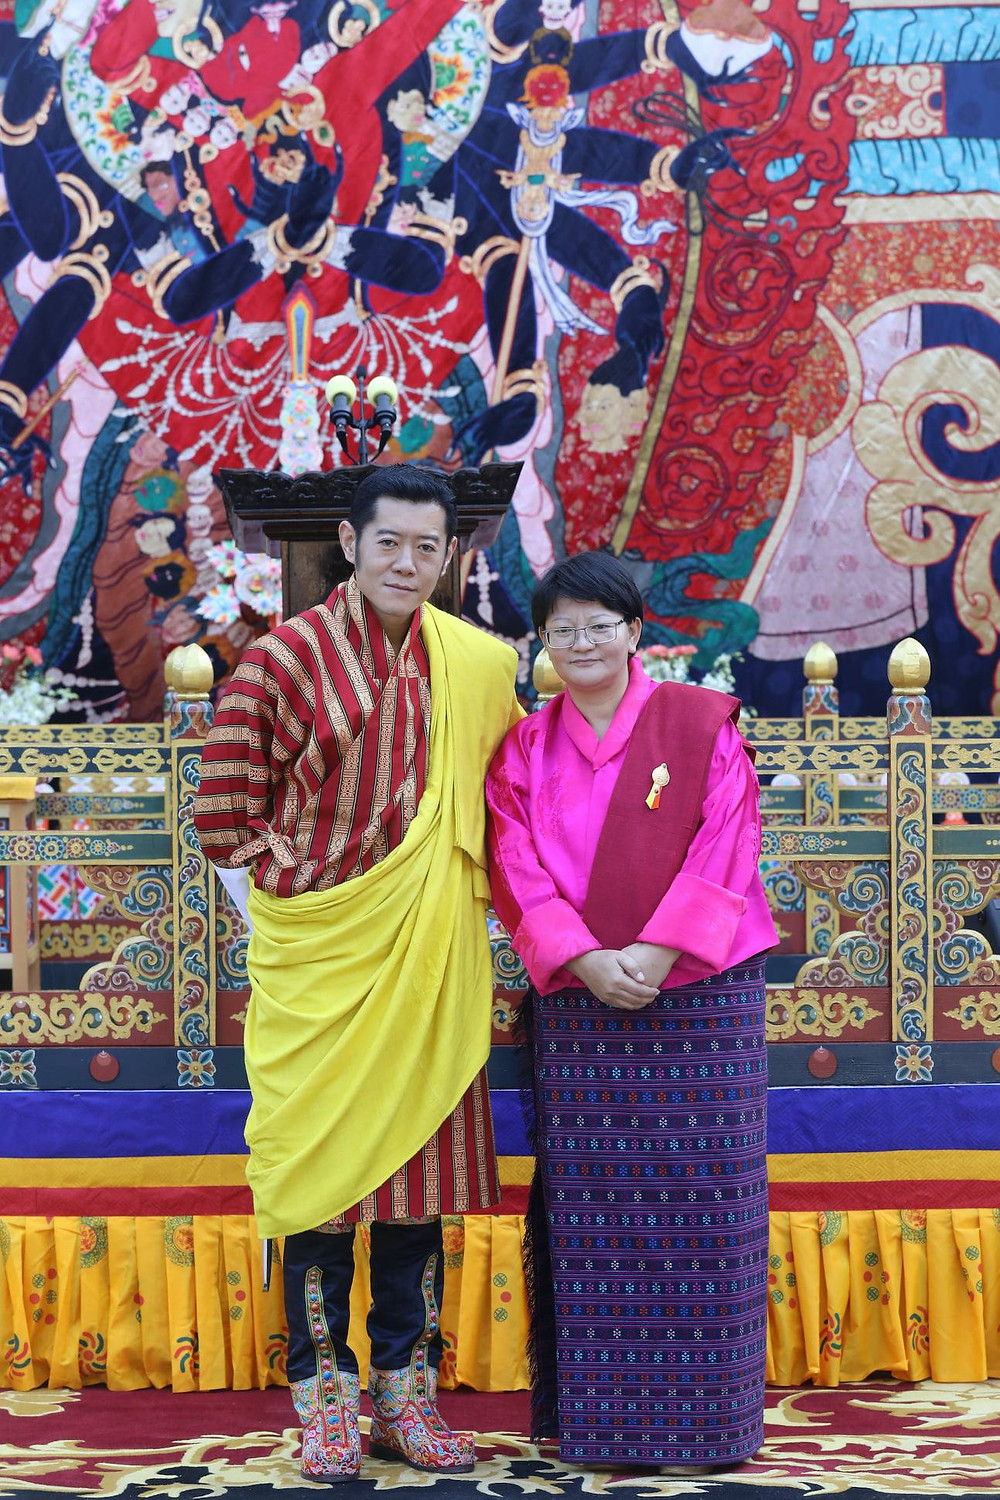 His Majesty The King conferred Dechen Wangmo with the Red Scarf